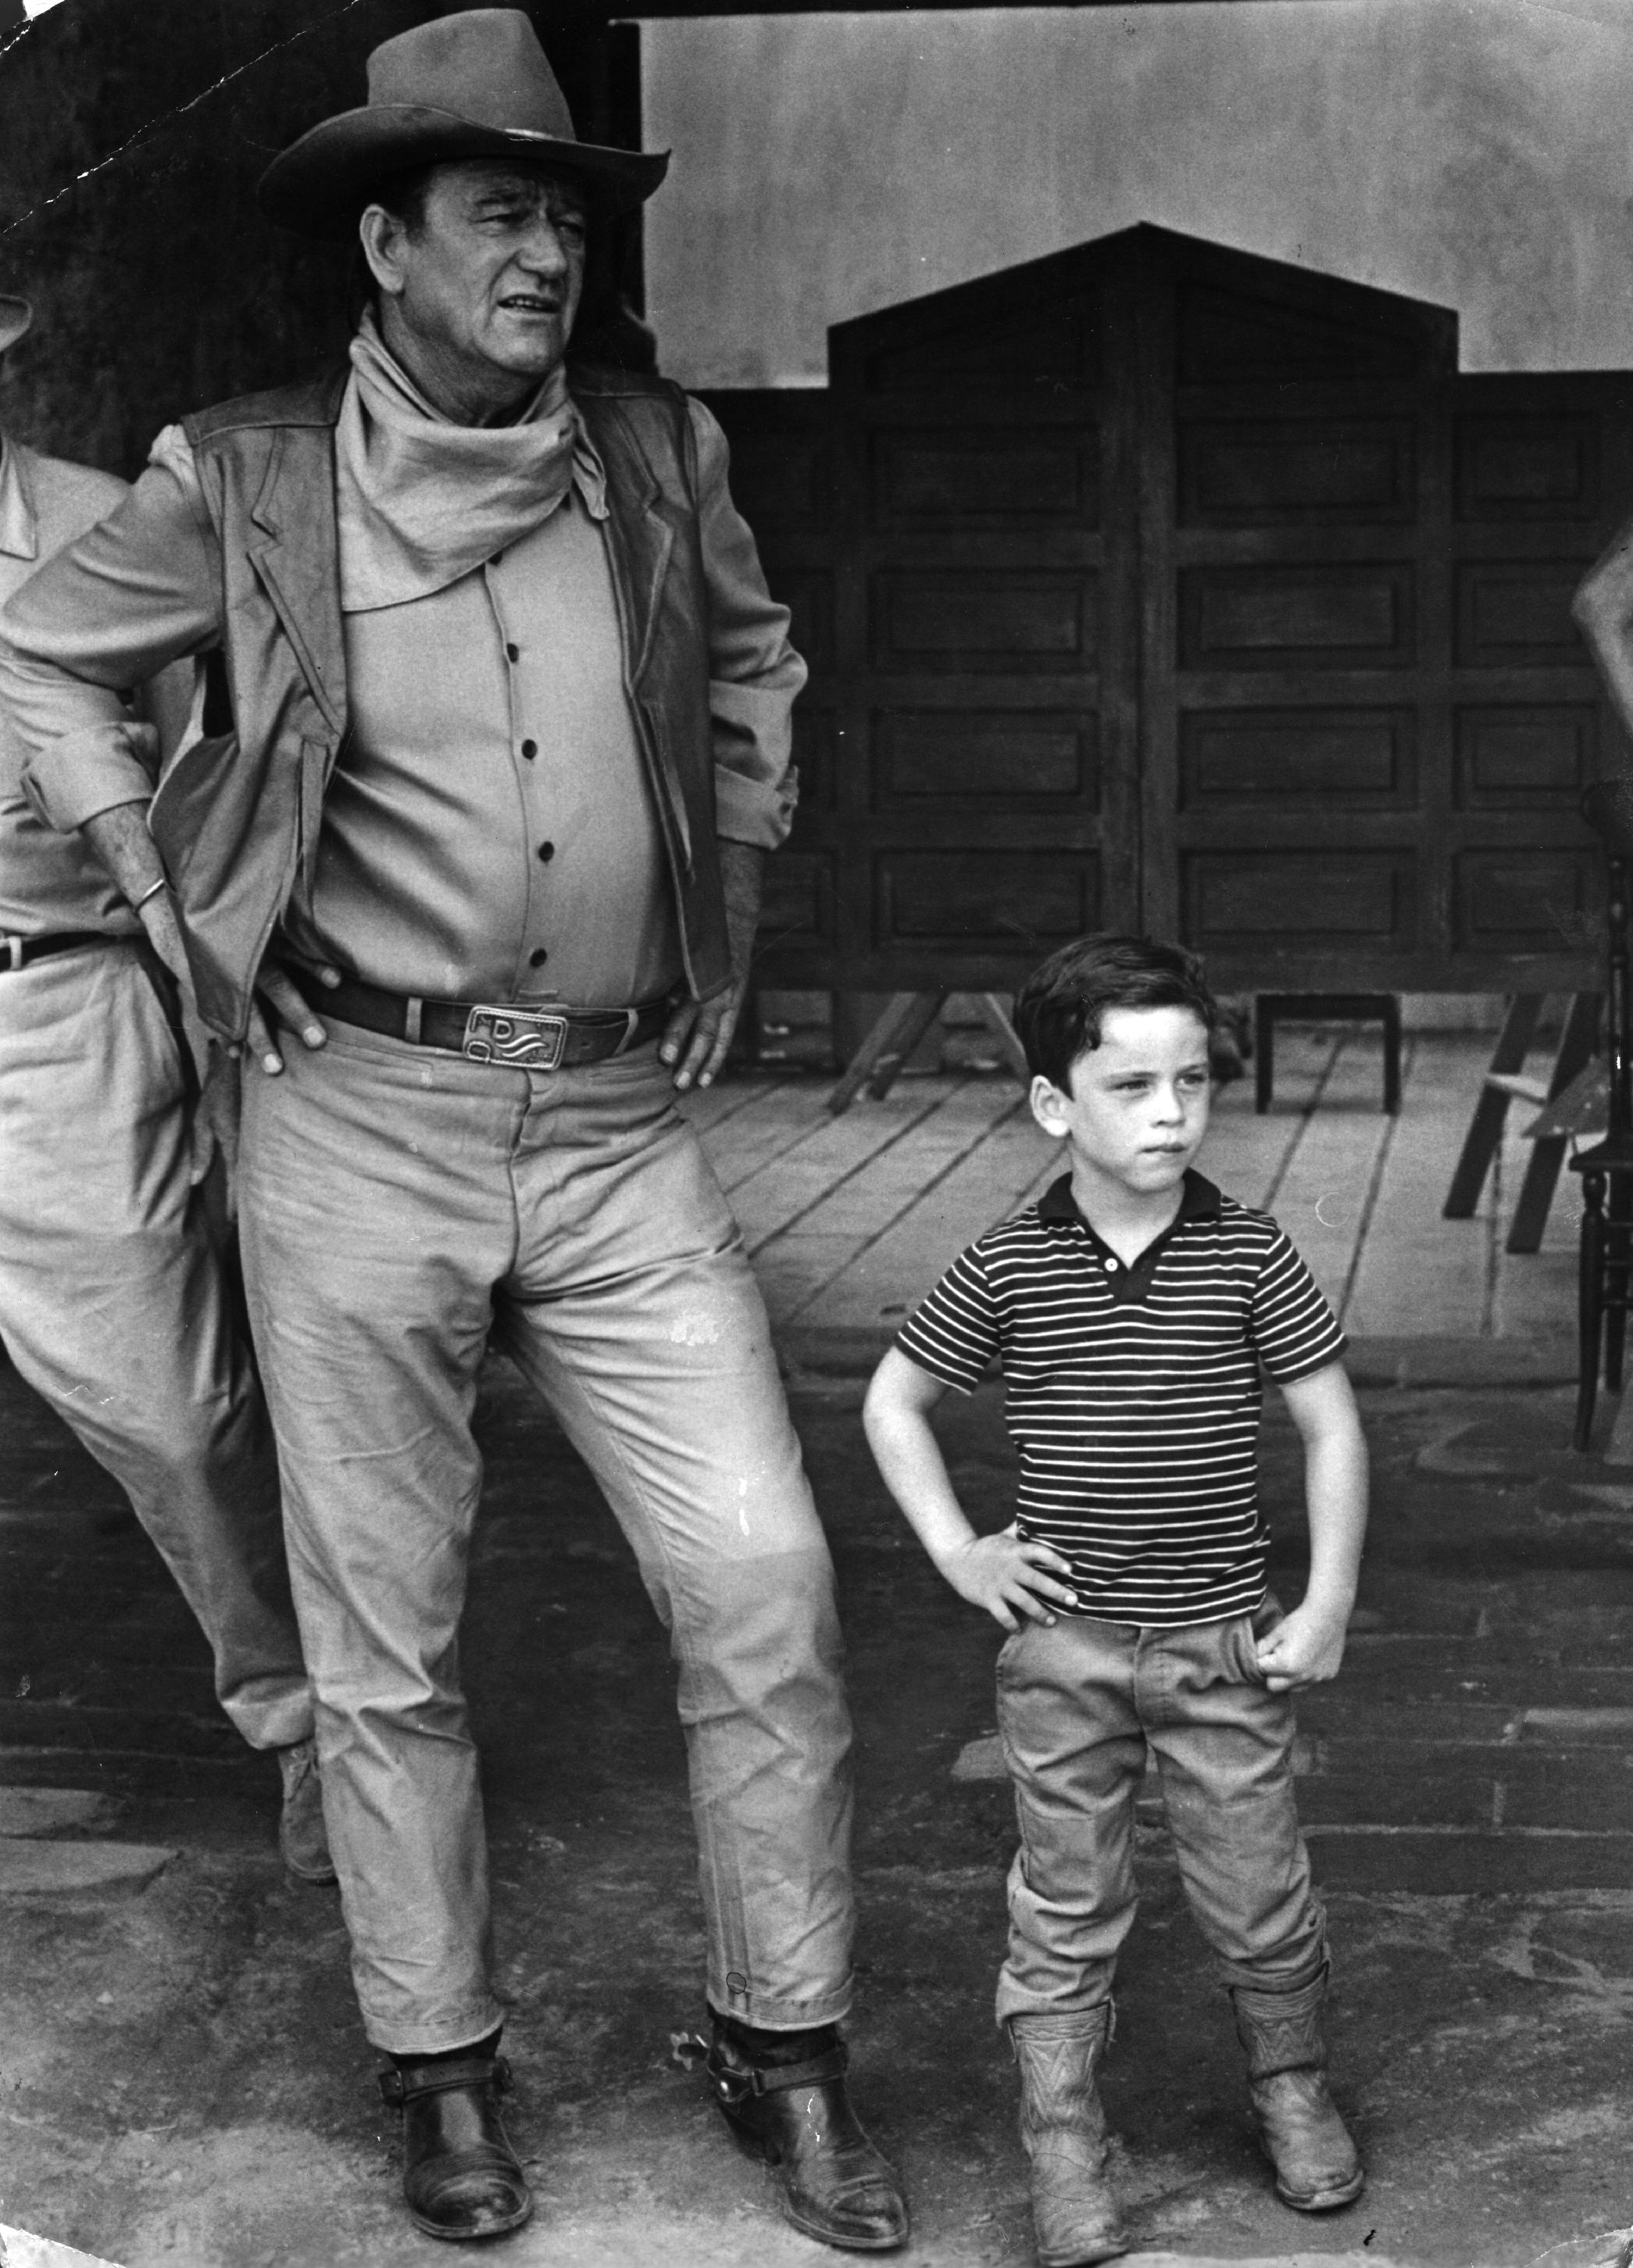 1967: The American film star, John Wayne, with his son, on location in Mexico for the filming of 'War Wagon | Photo: GettyImages